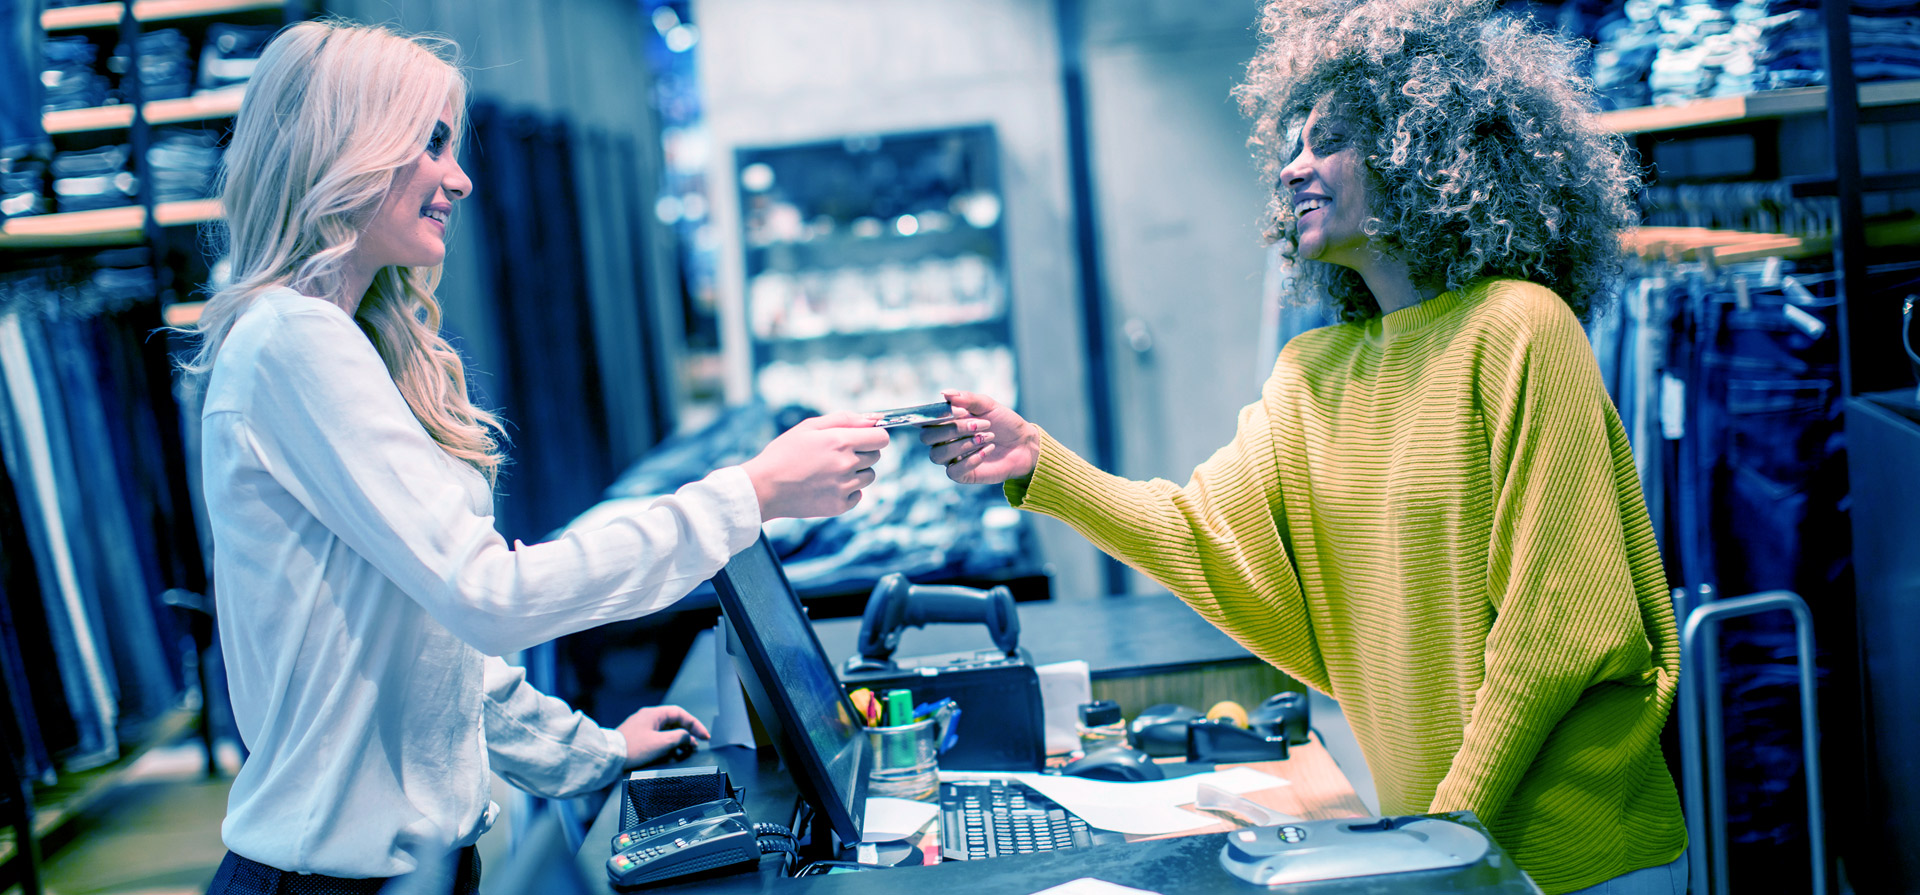 How does Dynamics AX for Retail help retailers create the complete customer experience?